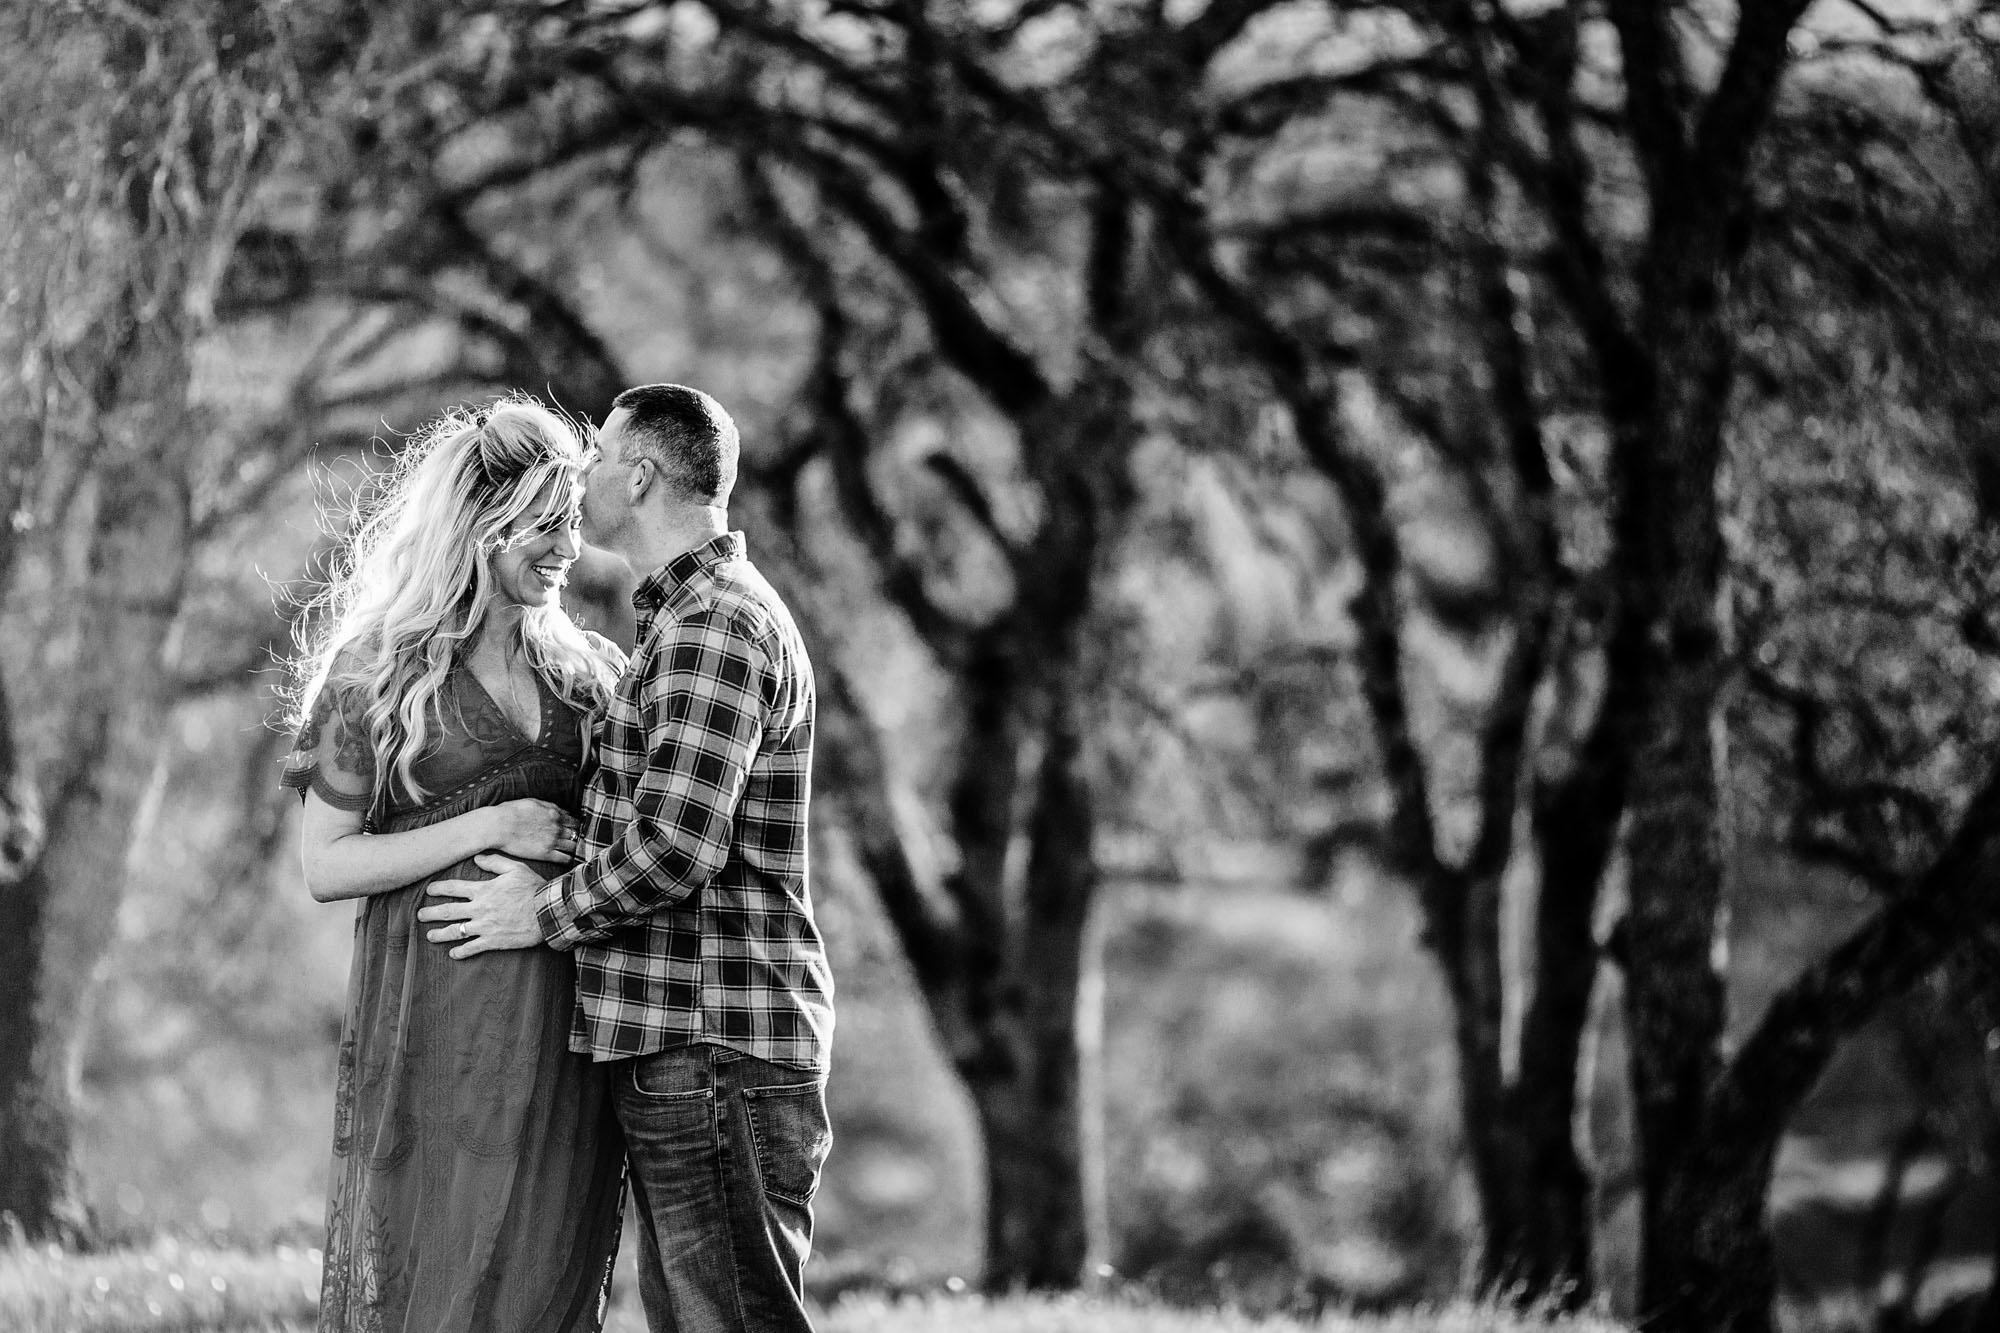 A husband kisses his wife during a lifestyle maternity session in Rocklin, California with Amy Wrigh tas the photographer.